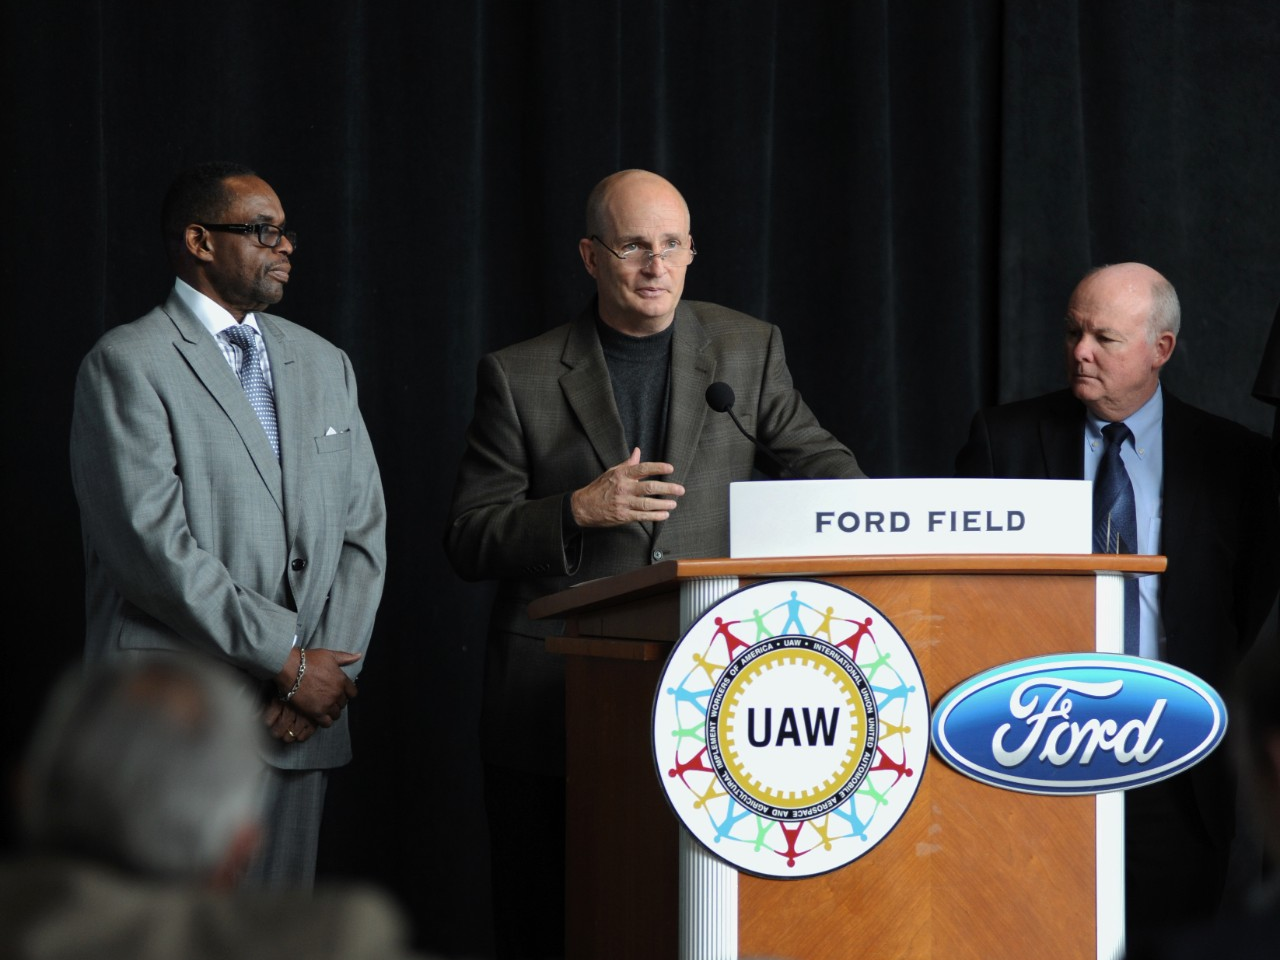 UAW and Ford to Create Child Safety Program in Plant Communities